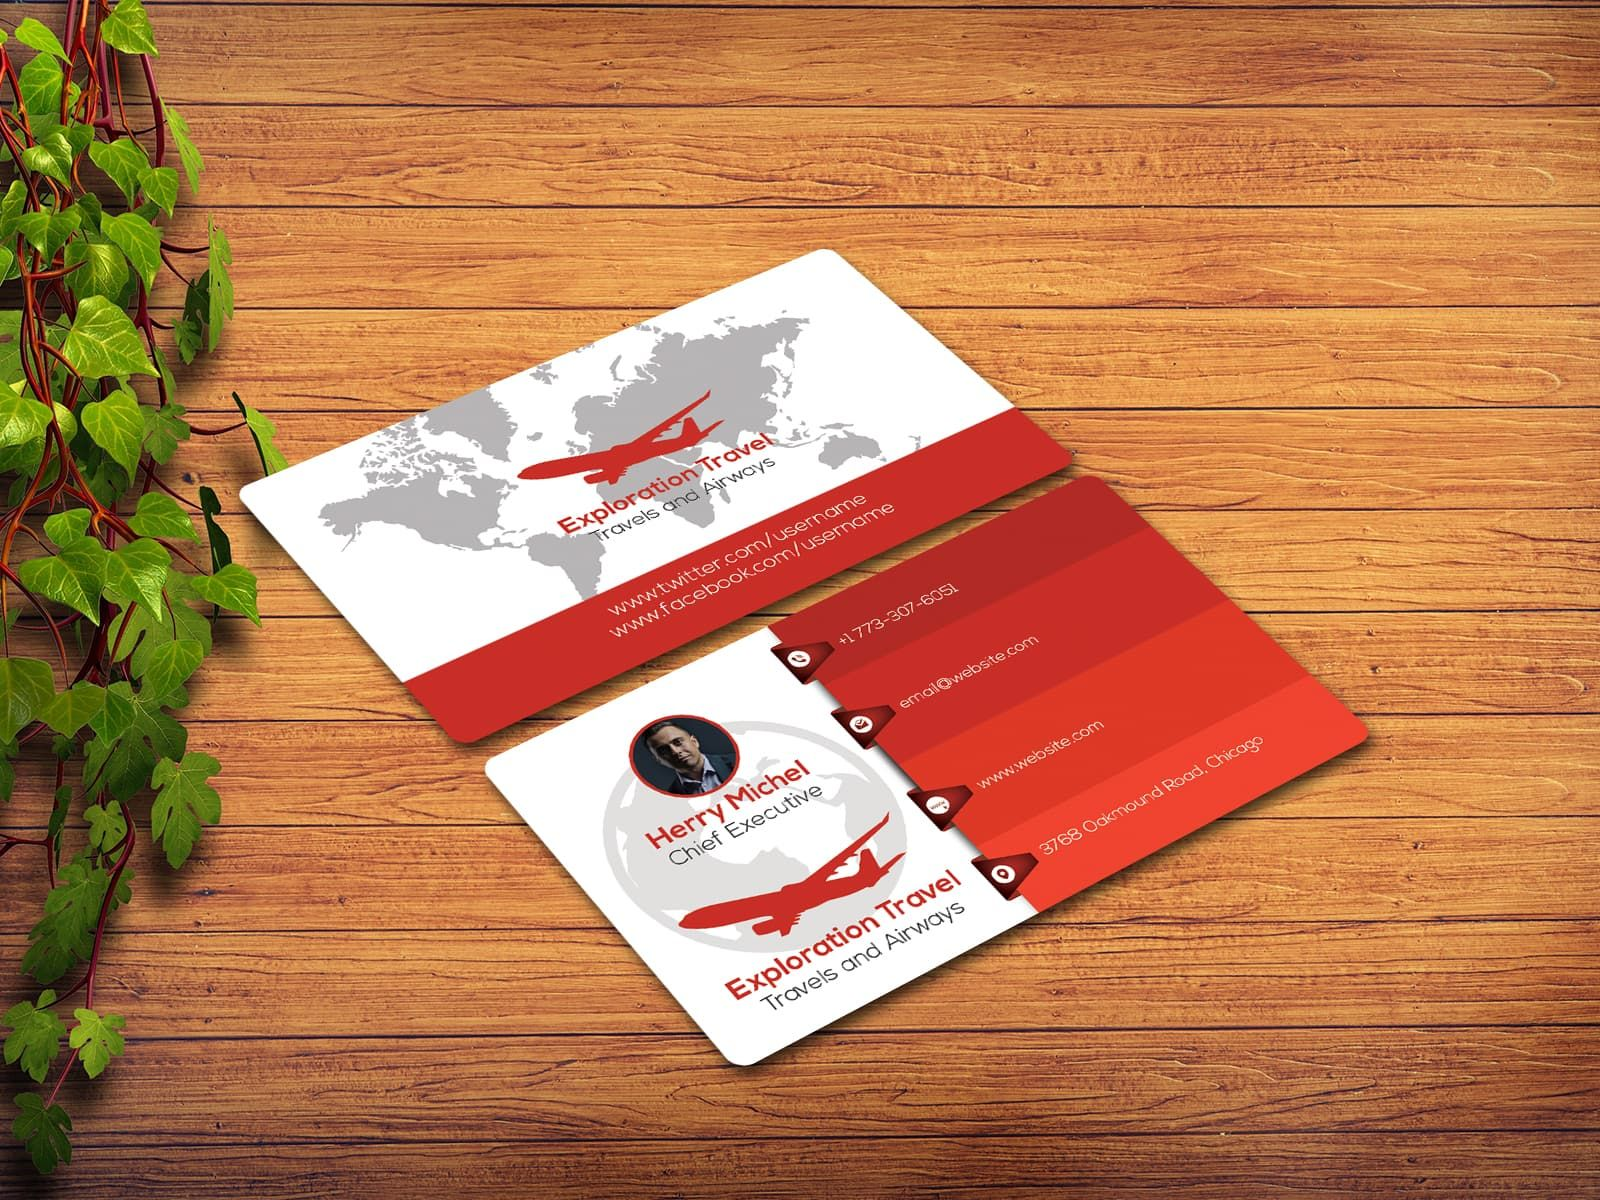 Exploration Travel Agency Business Card Freelance Business Card Agency Business Cards Business Cards Creative Templates